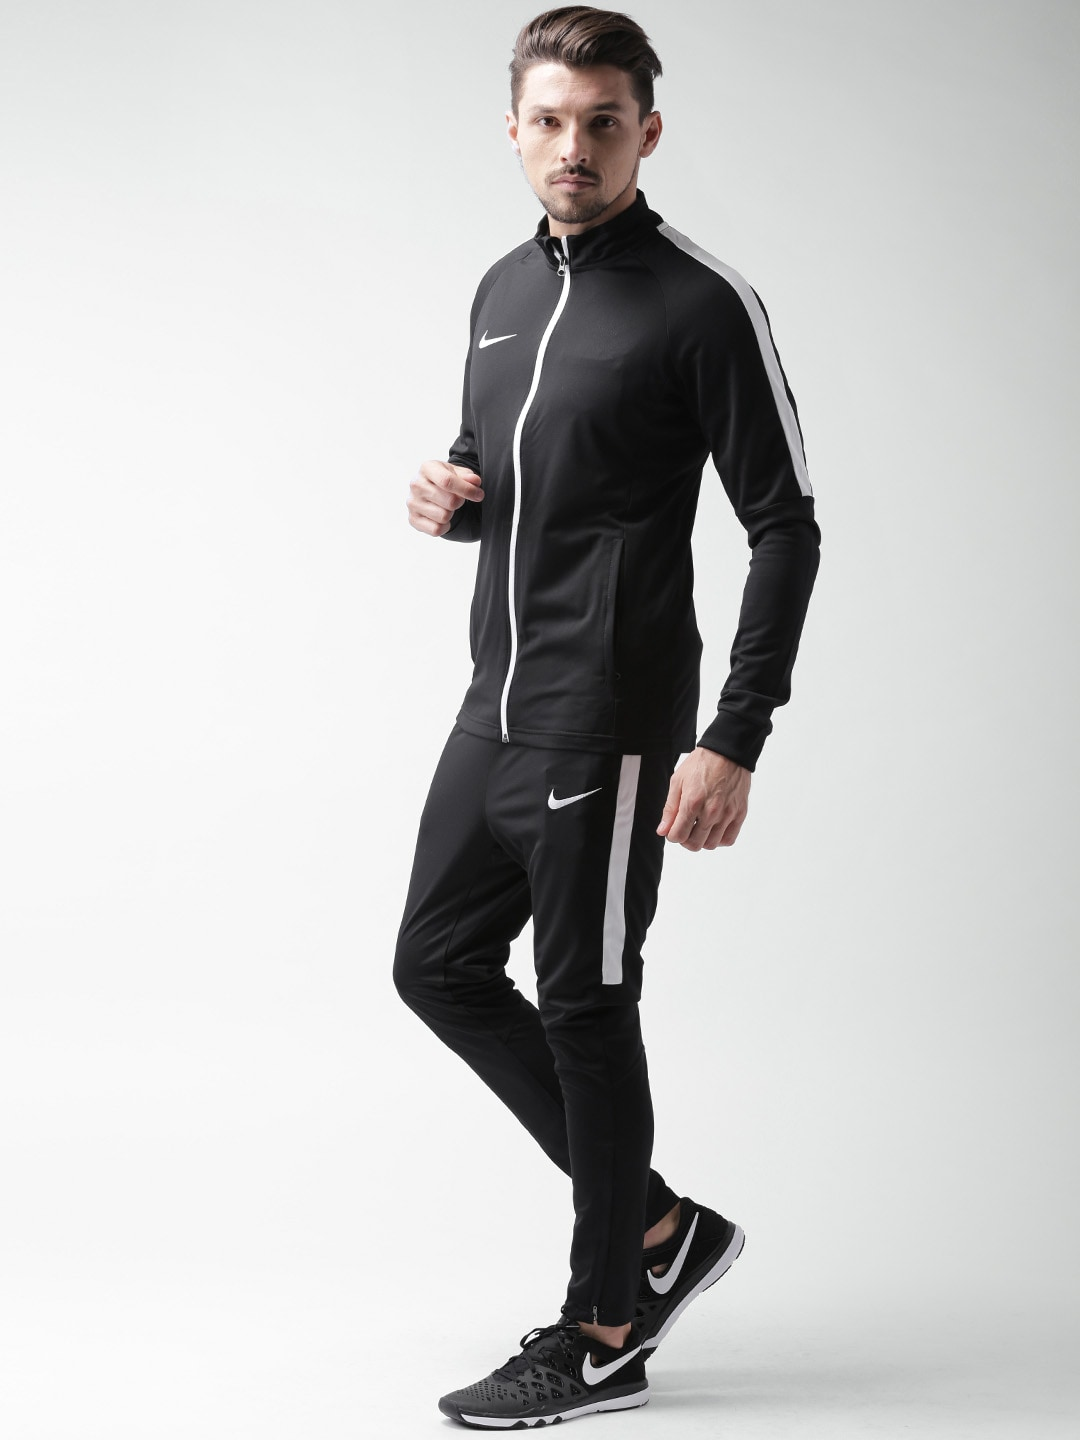 Materials of men's tracksuits. Most tracksuits come in similar styles although the color, patterns, and designs may be different. The most important factor to consider when shopping for tracksuits is the type of material. Popular fabrics include cotton fleece, jersey, and pique.